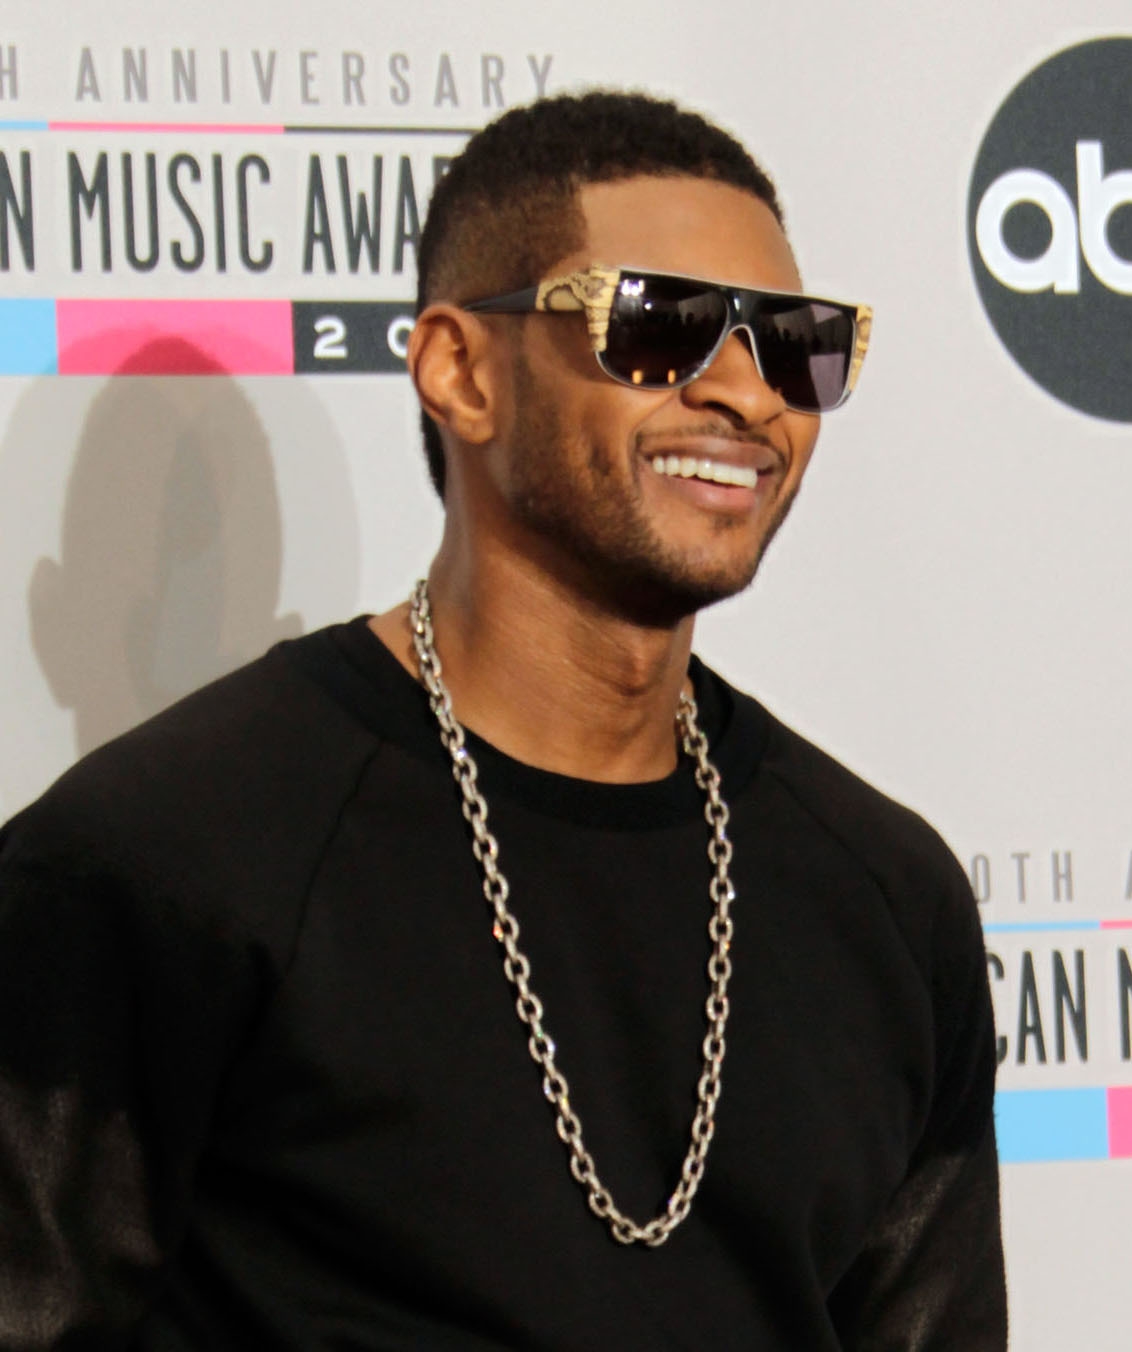 usher custody sons tameka foster court case pool accident